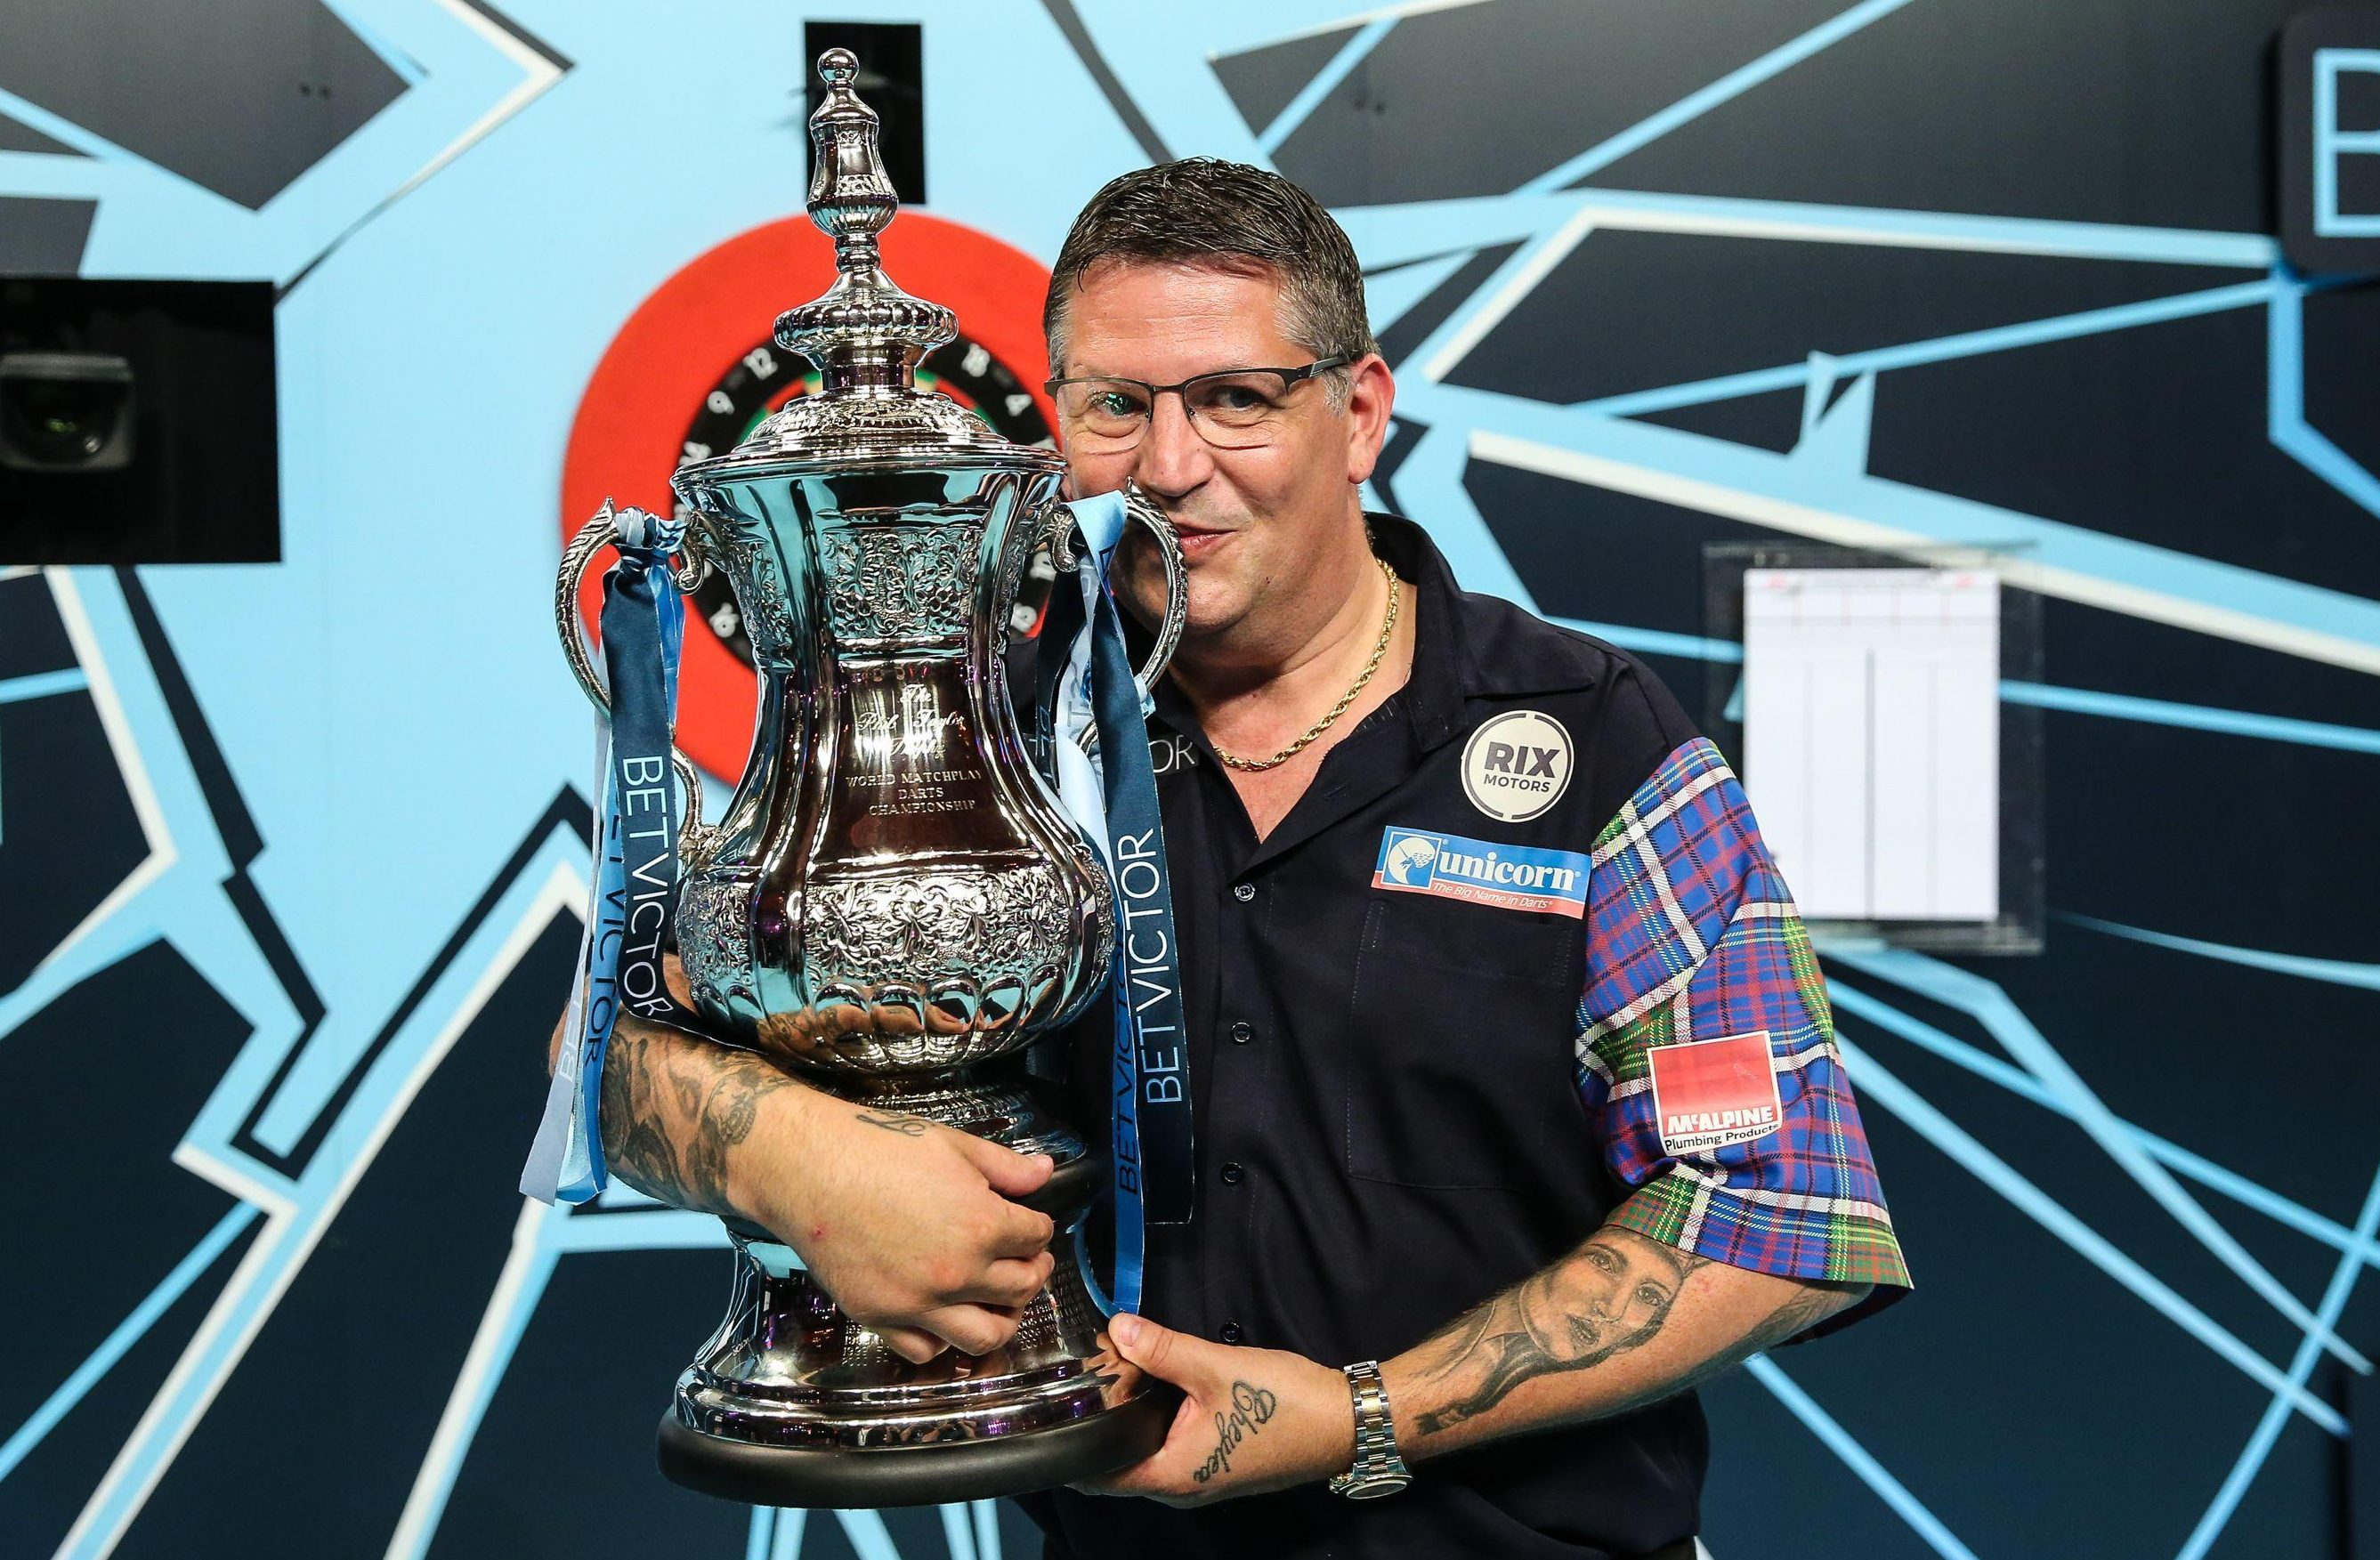 Anderson becomes the third man after Phil Taylor and Michael van Gerwen to win darts' Triple Crown